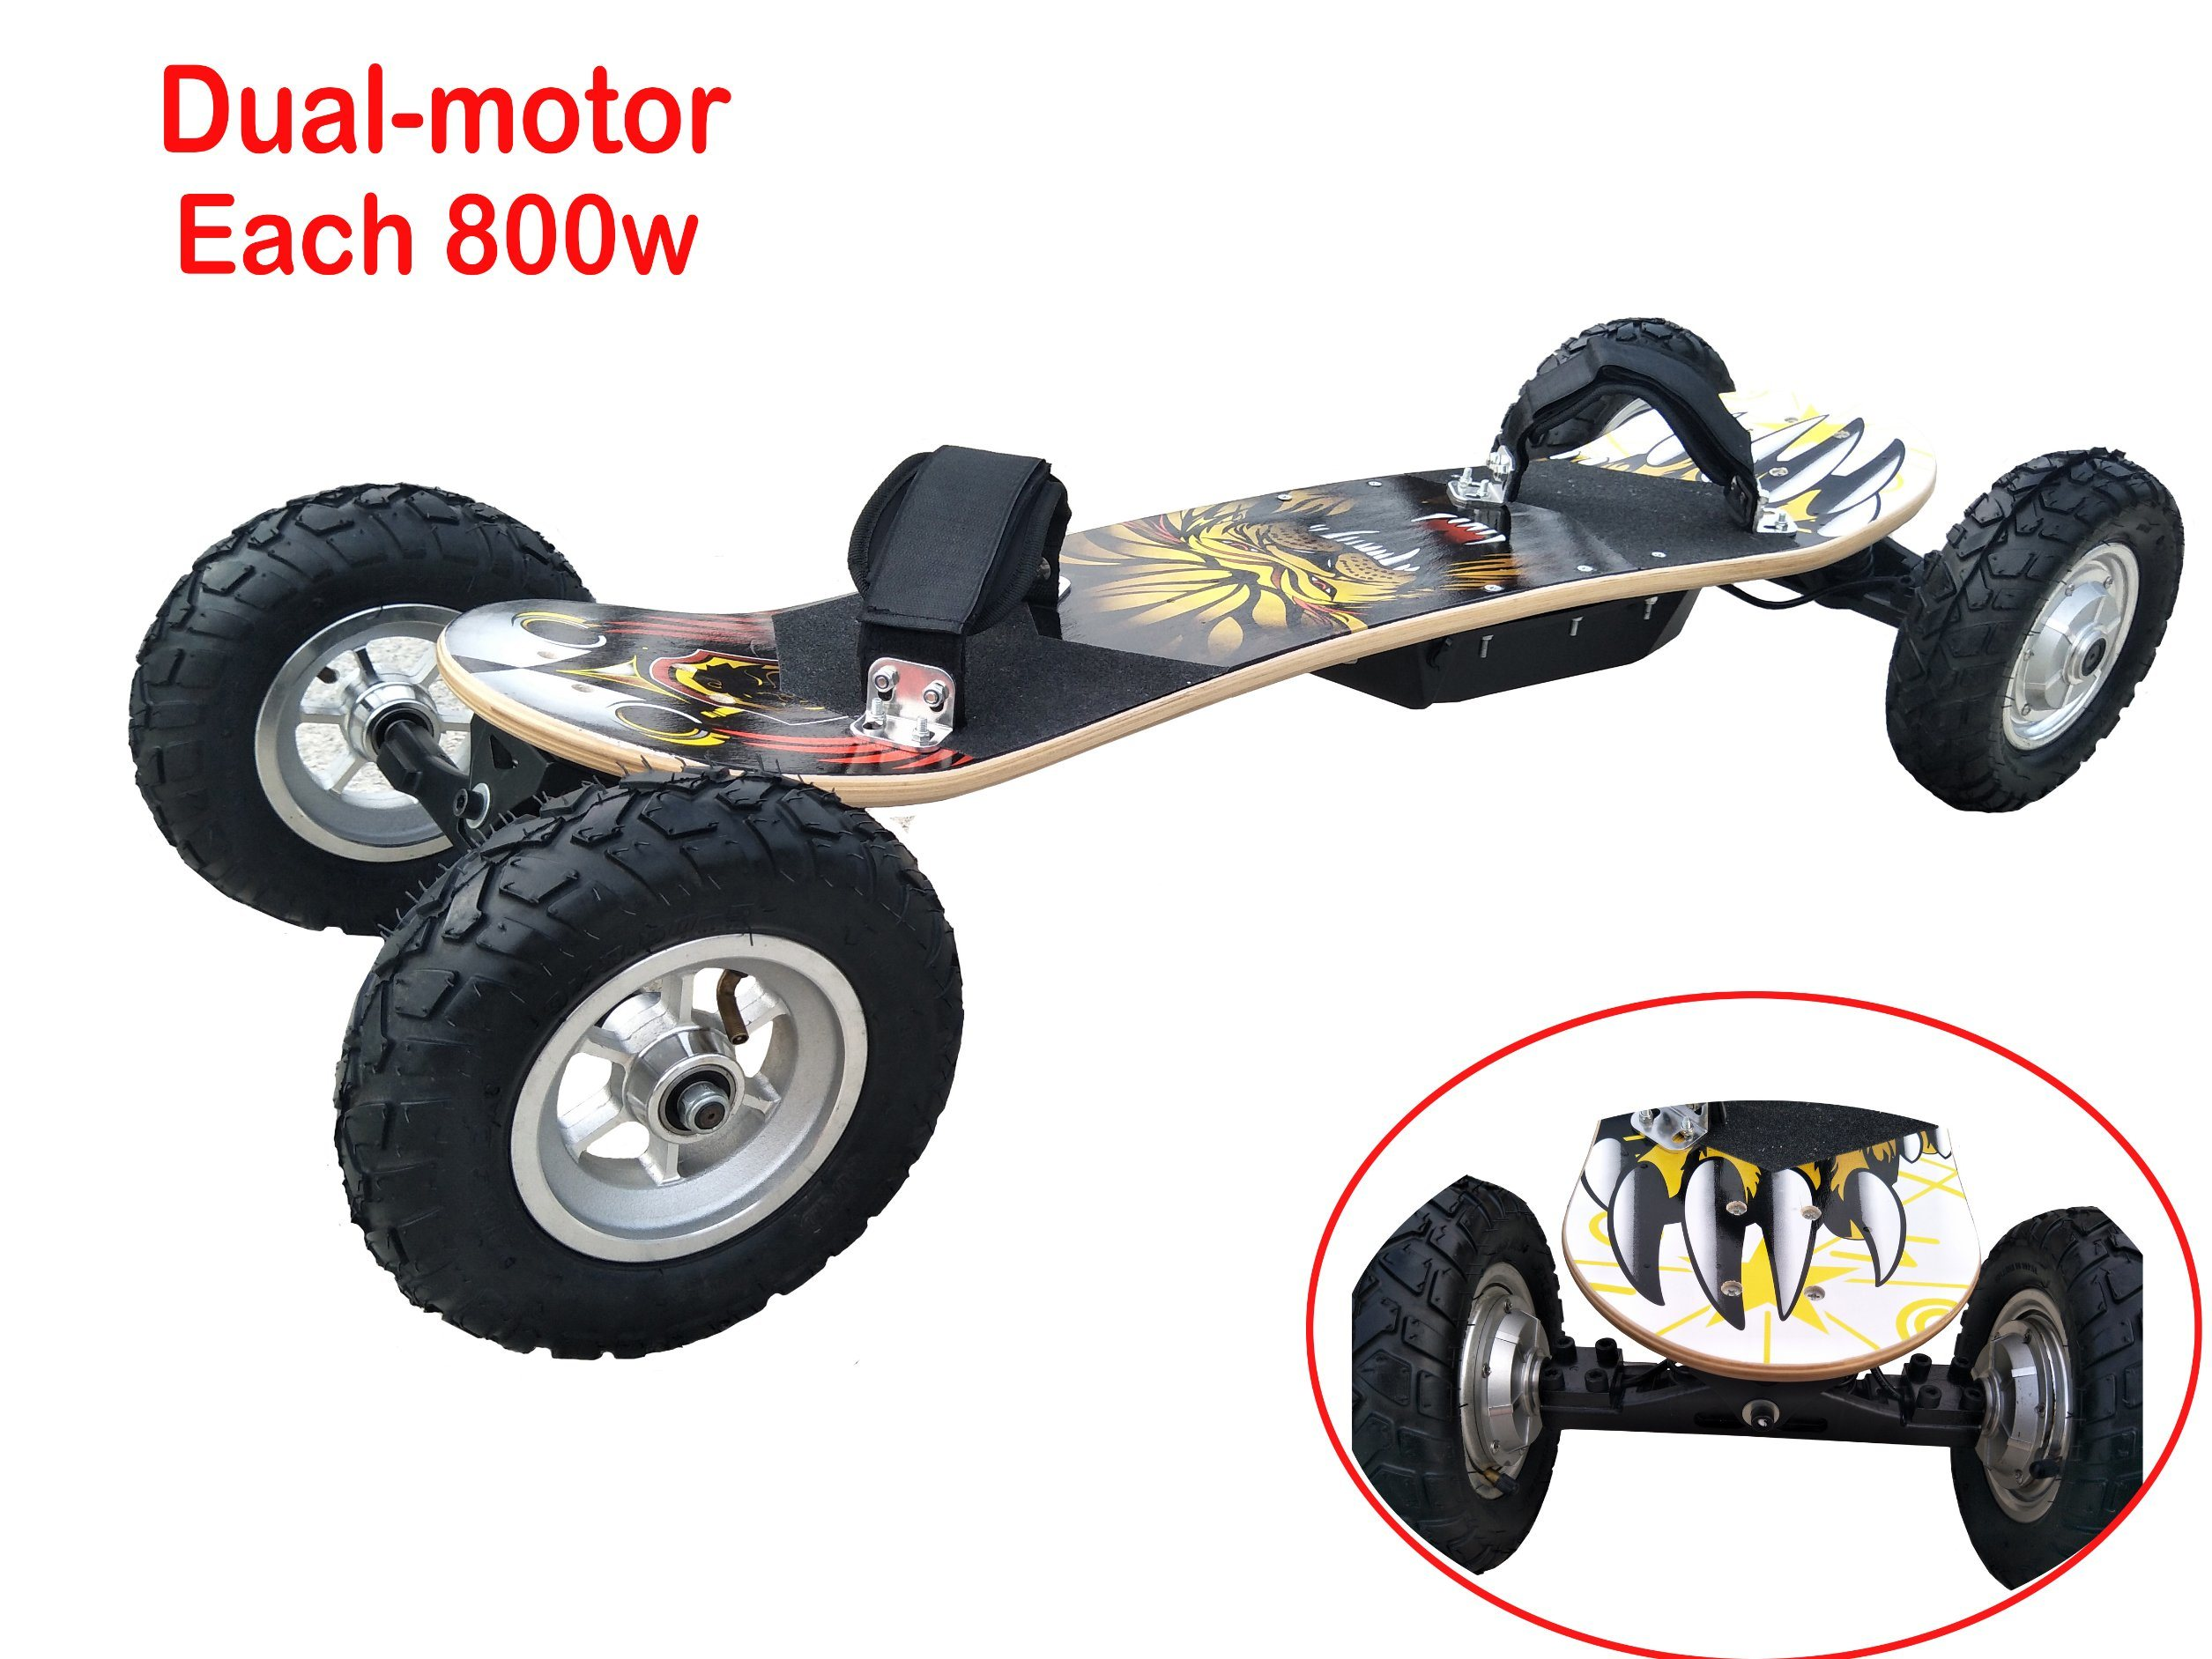 China Control Board Manufacturers Suppliers Made Self Balancing Scooter Part Pcb Circuit Universal